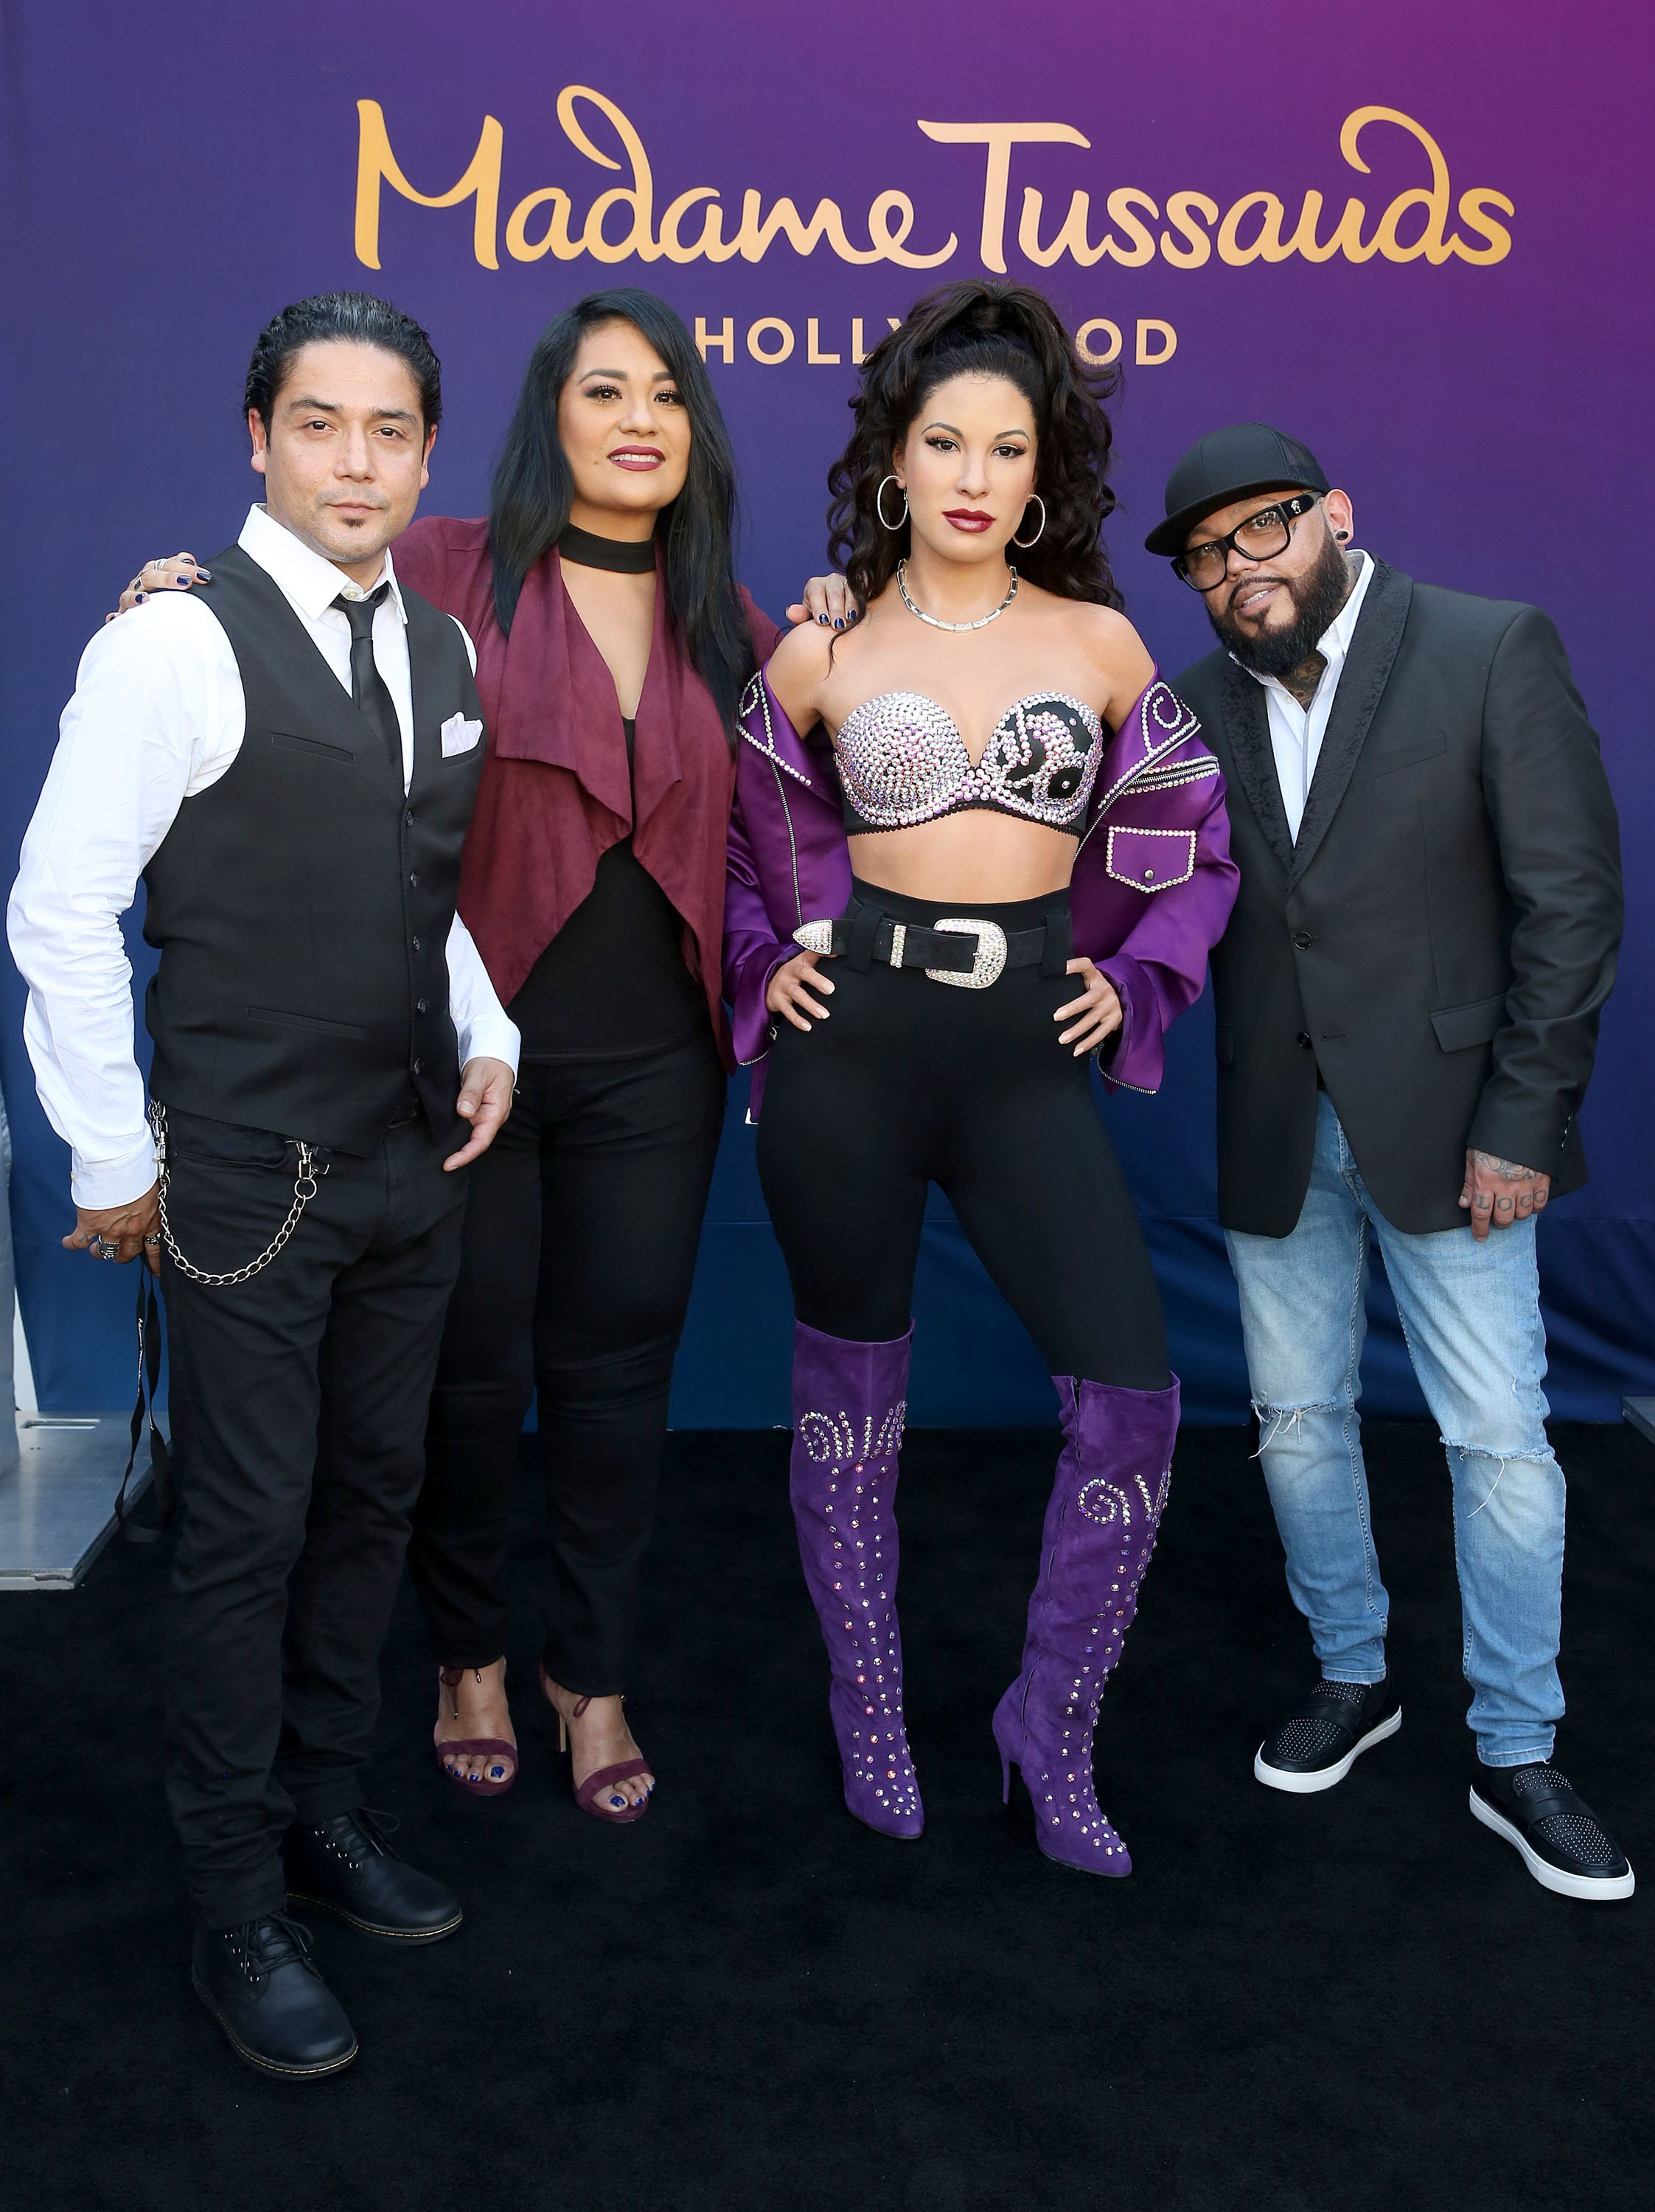 Selena's husband Chris Perez, sister Suzette Quintanilla and brother AB Quintanilla onstage during Madame Tussauds Hollywood's unveiling of Grammy award winner and cultural icon Selena Quintanilla immortalized in wax at Madame Tussauds on August 30, 2016 in Hollywood, California. | Photo: Getty Images